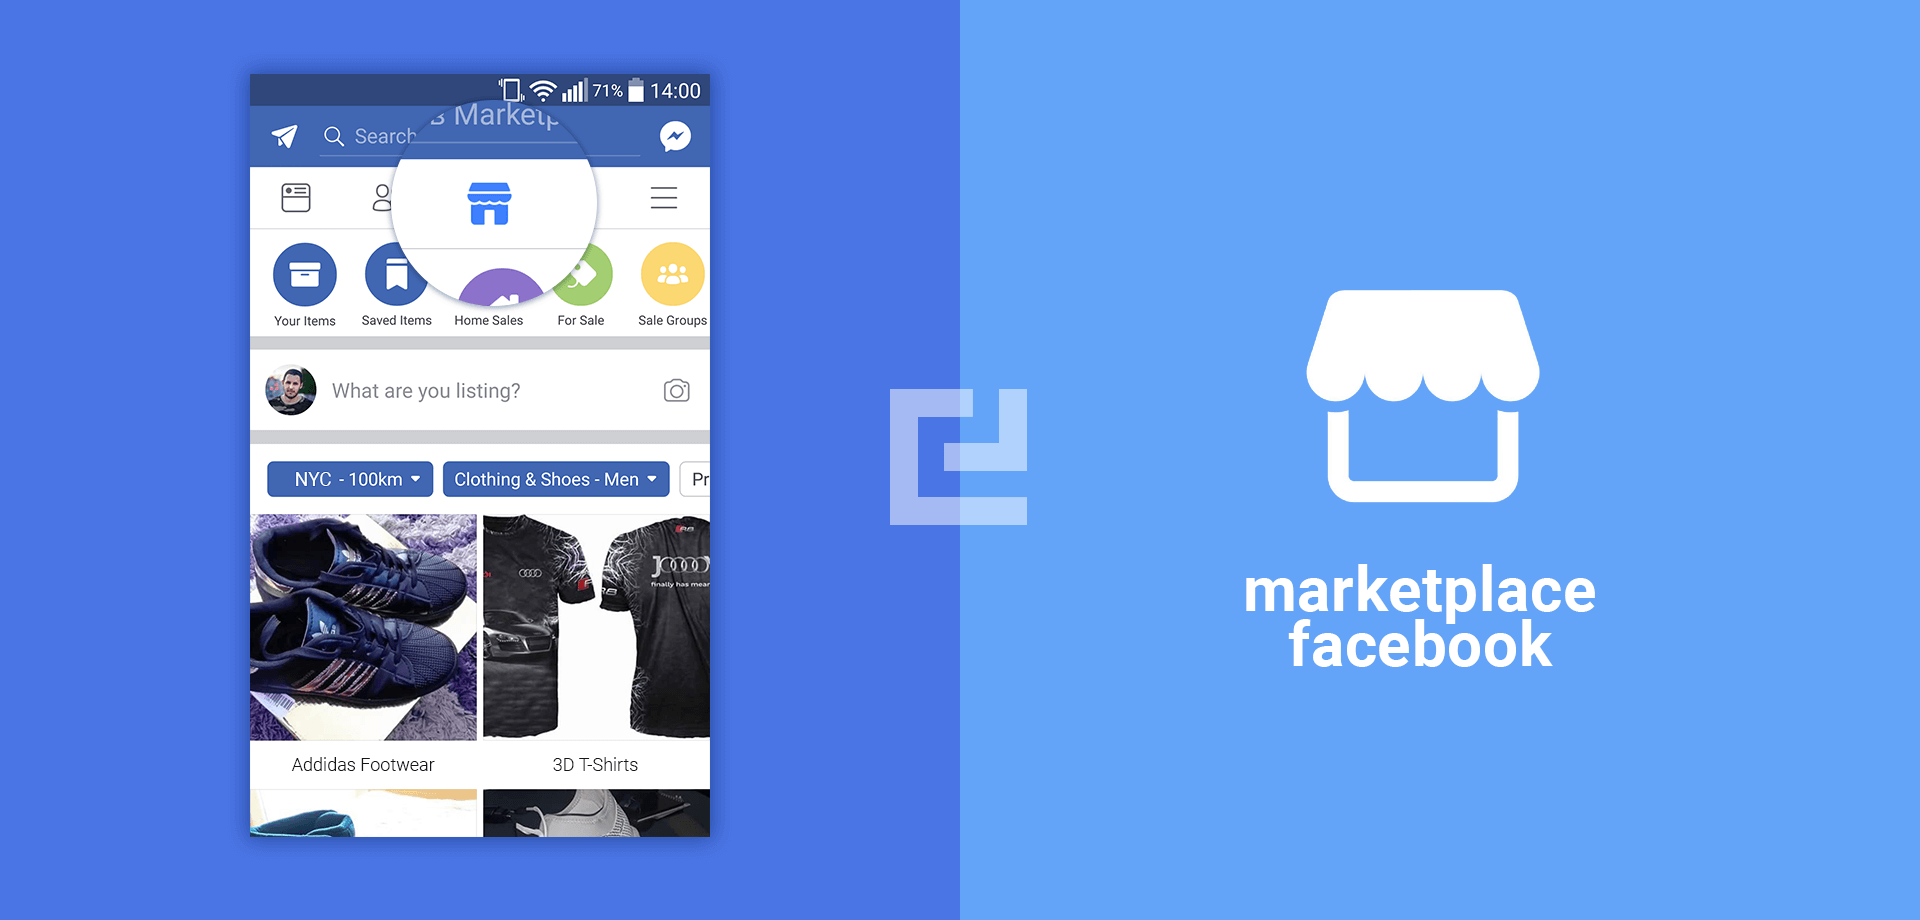 Foster your Enterprise with the Facebook Marketplace for Business